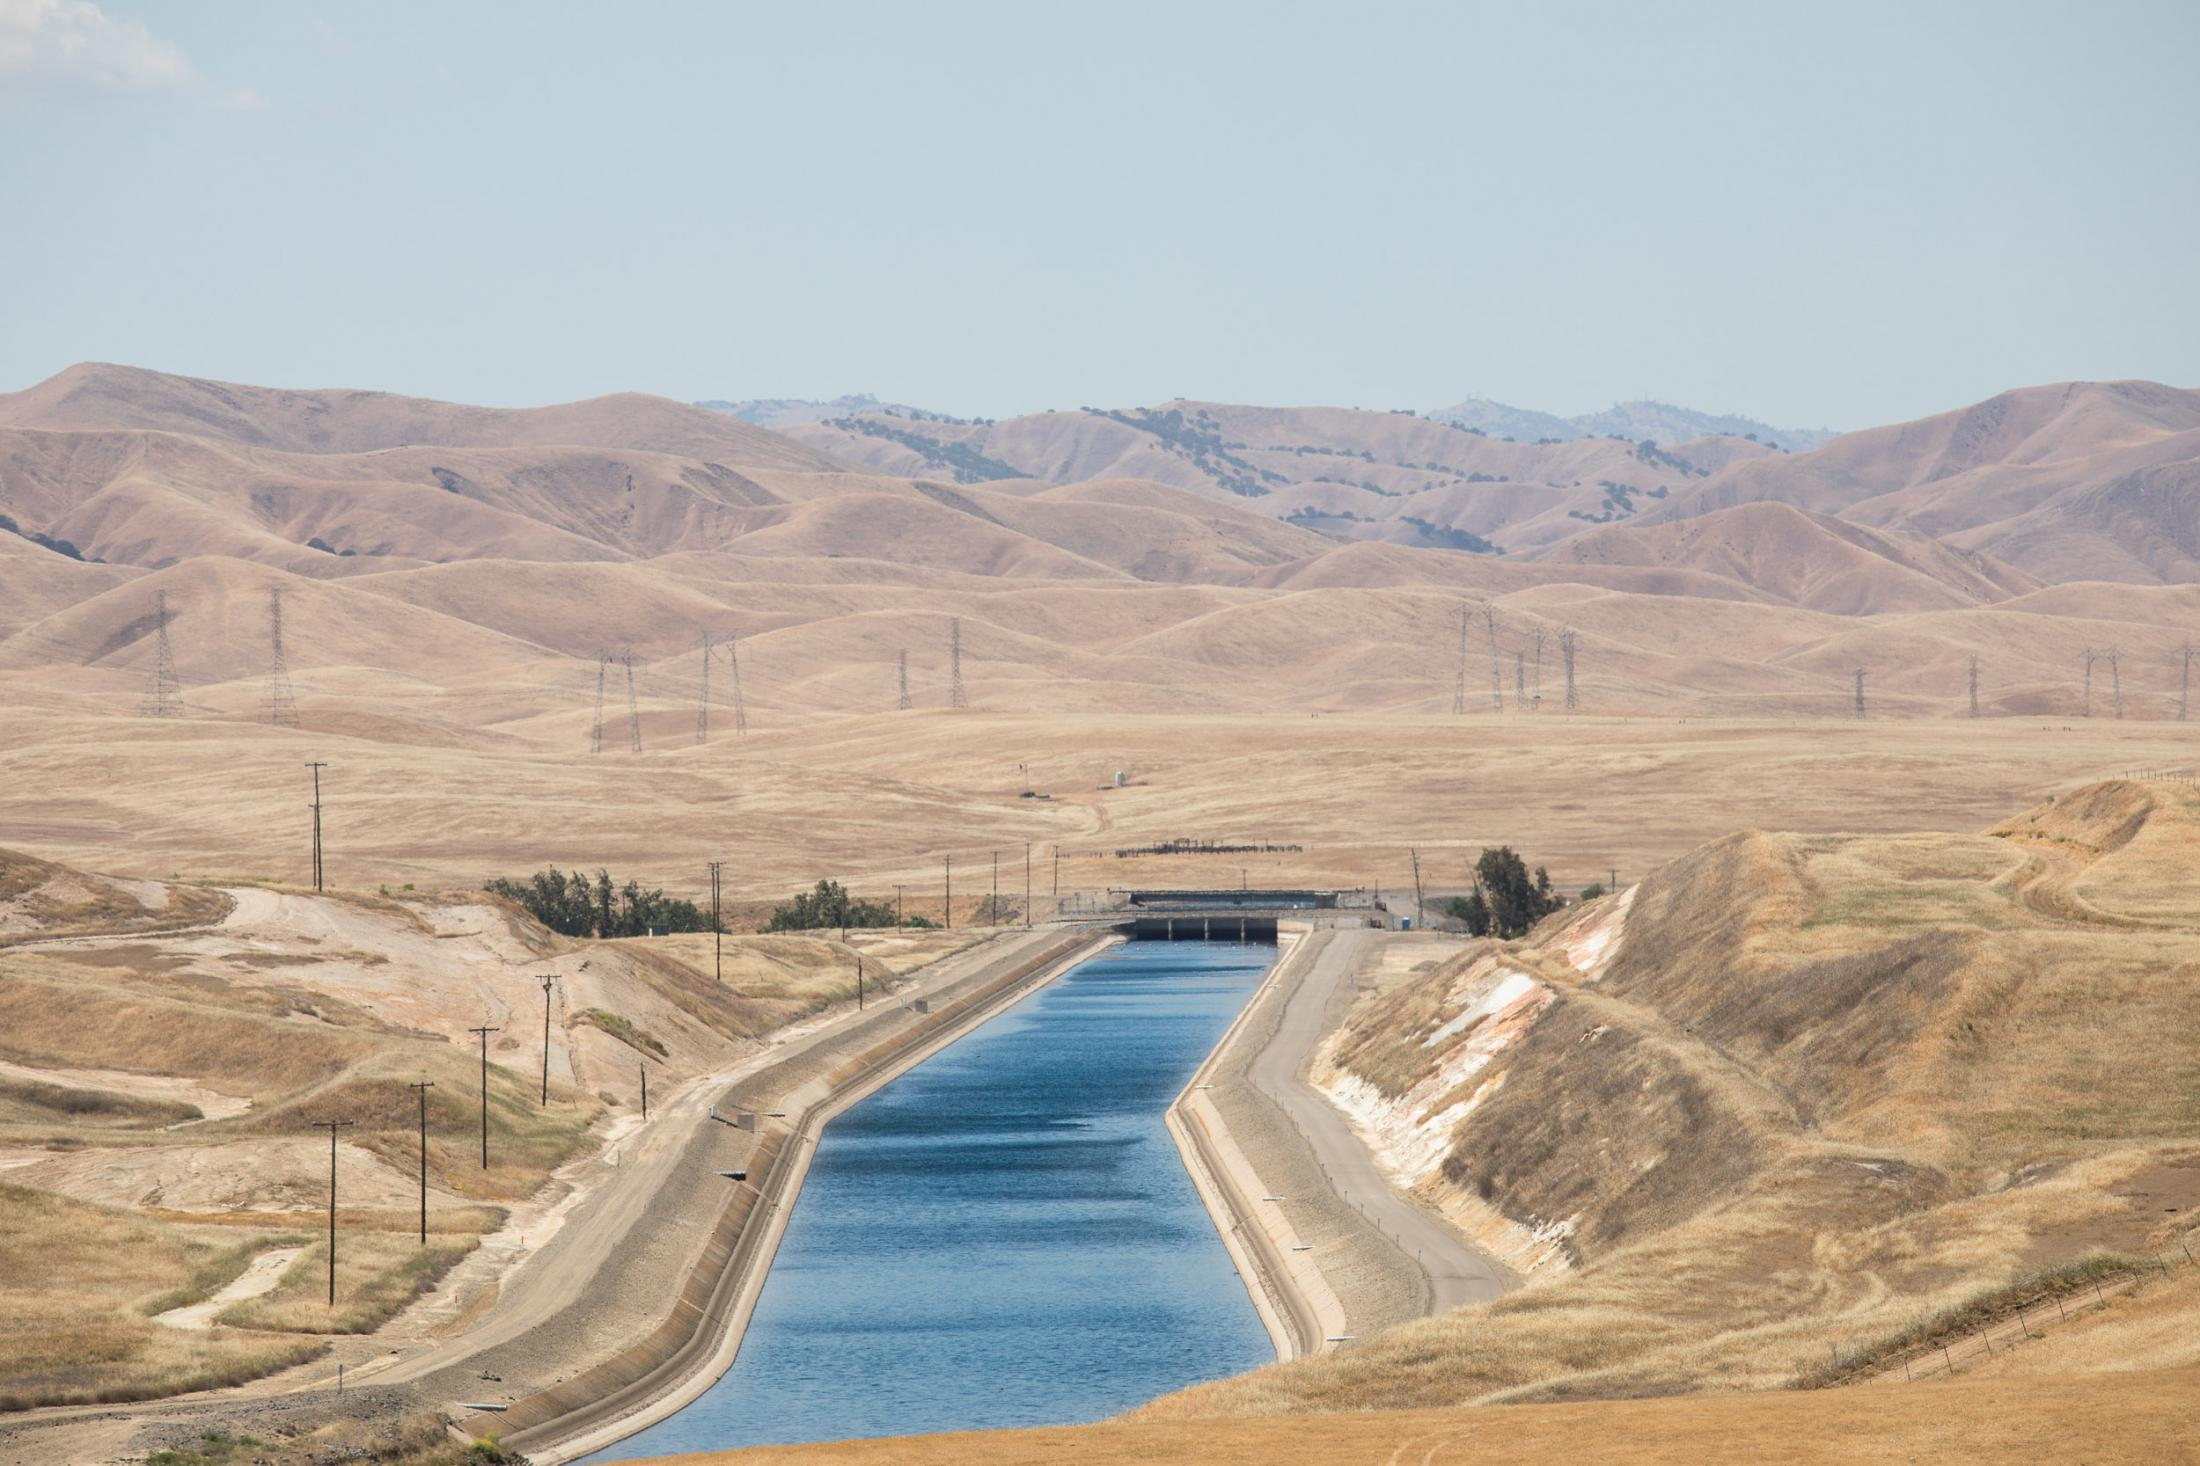 13. The California aqueduct. May 2018